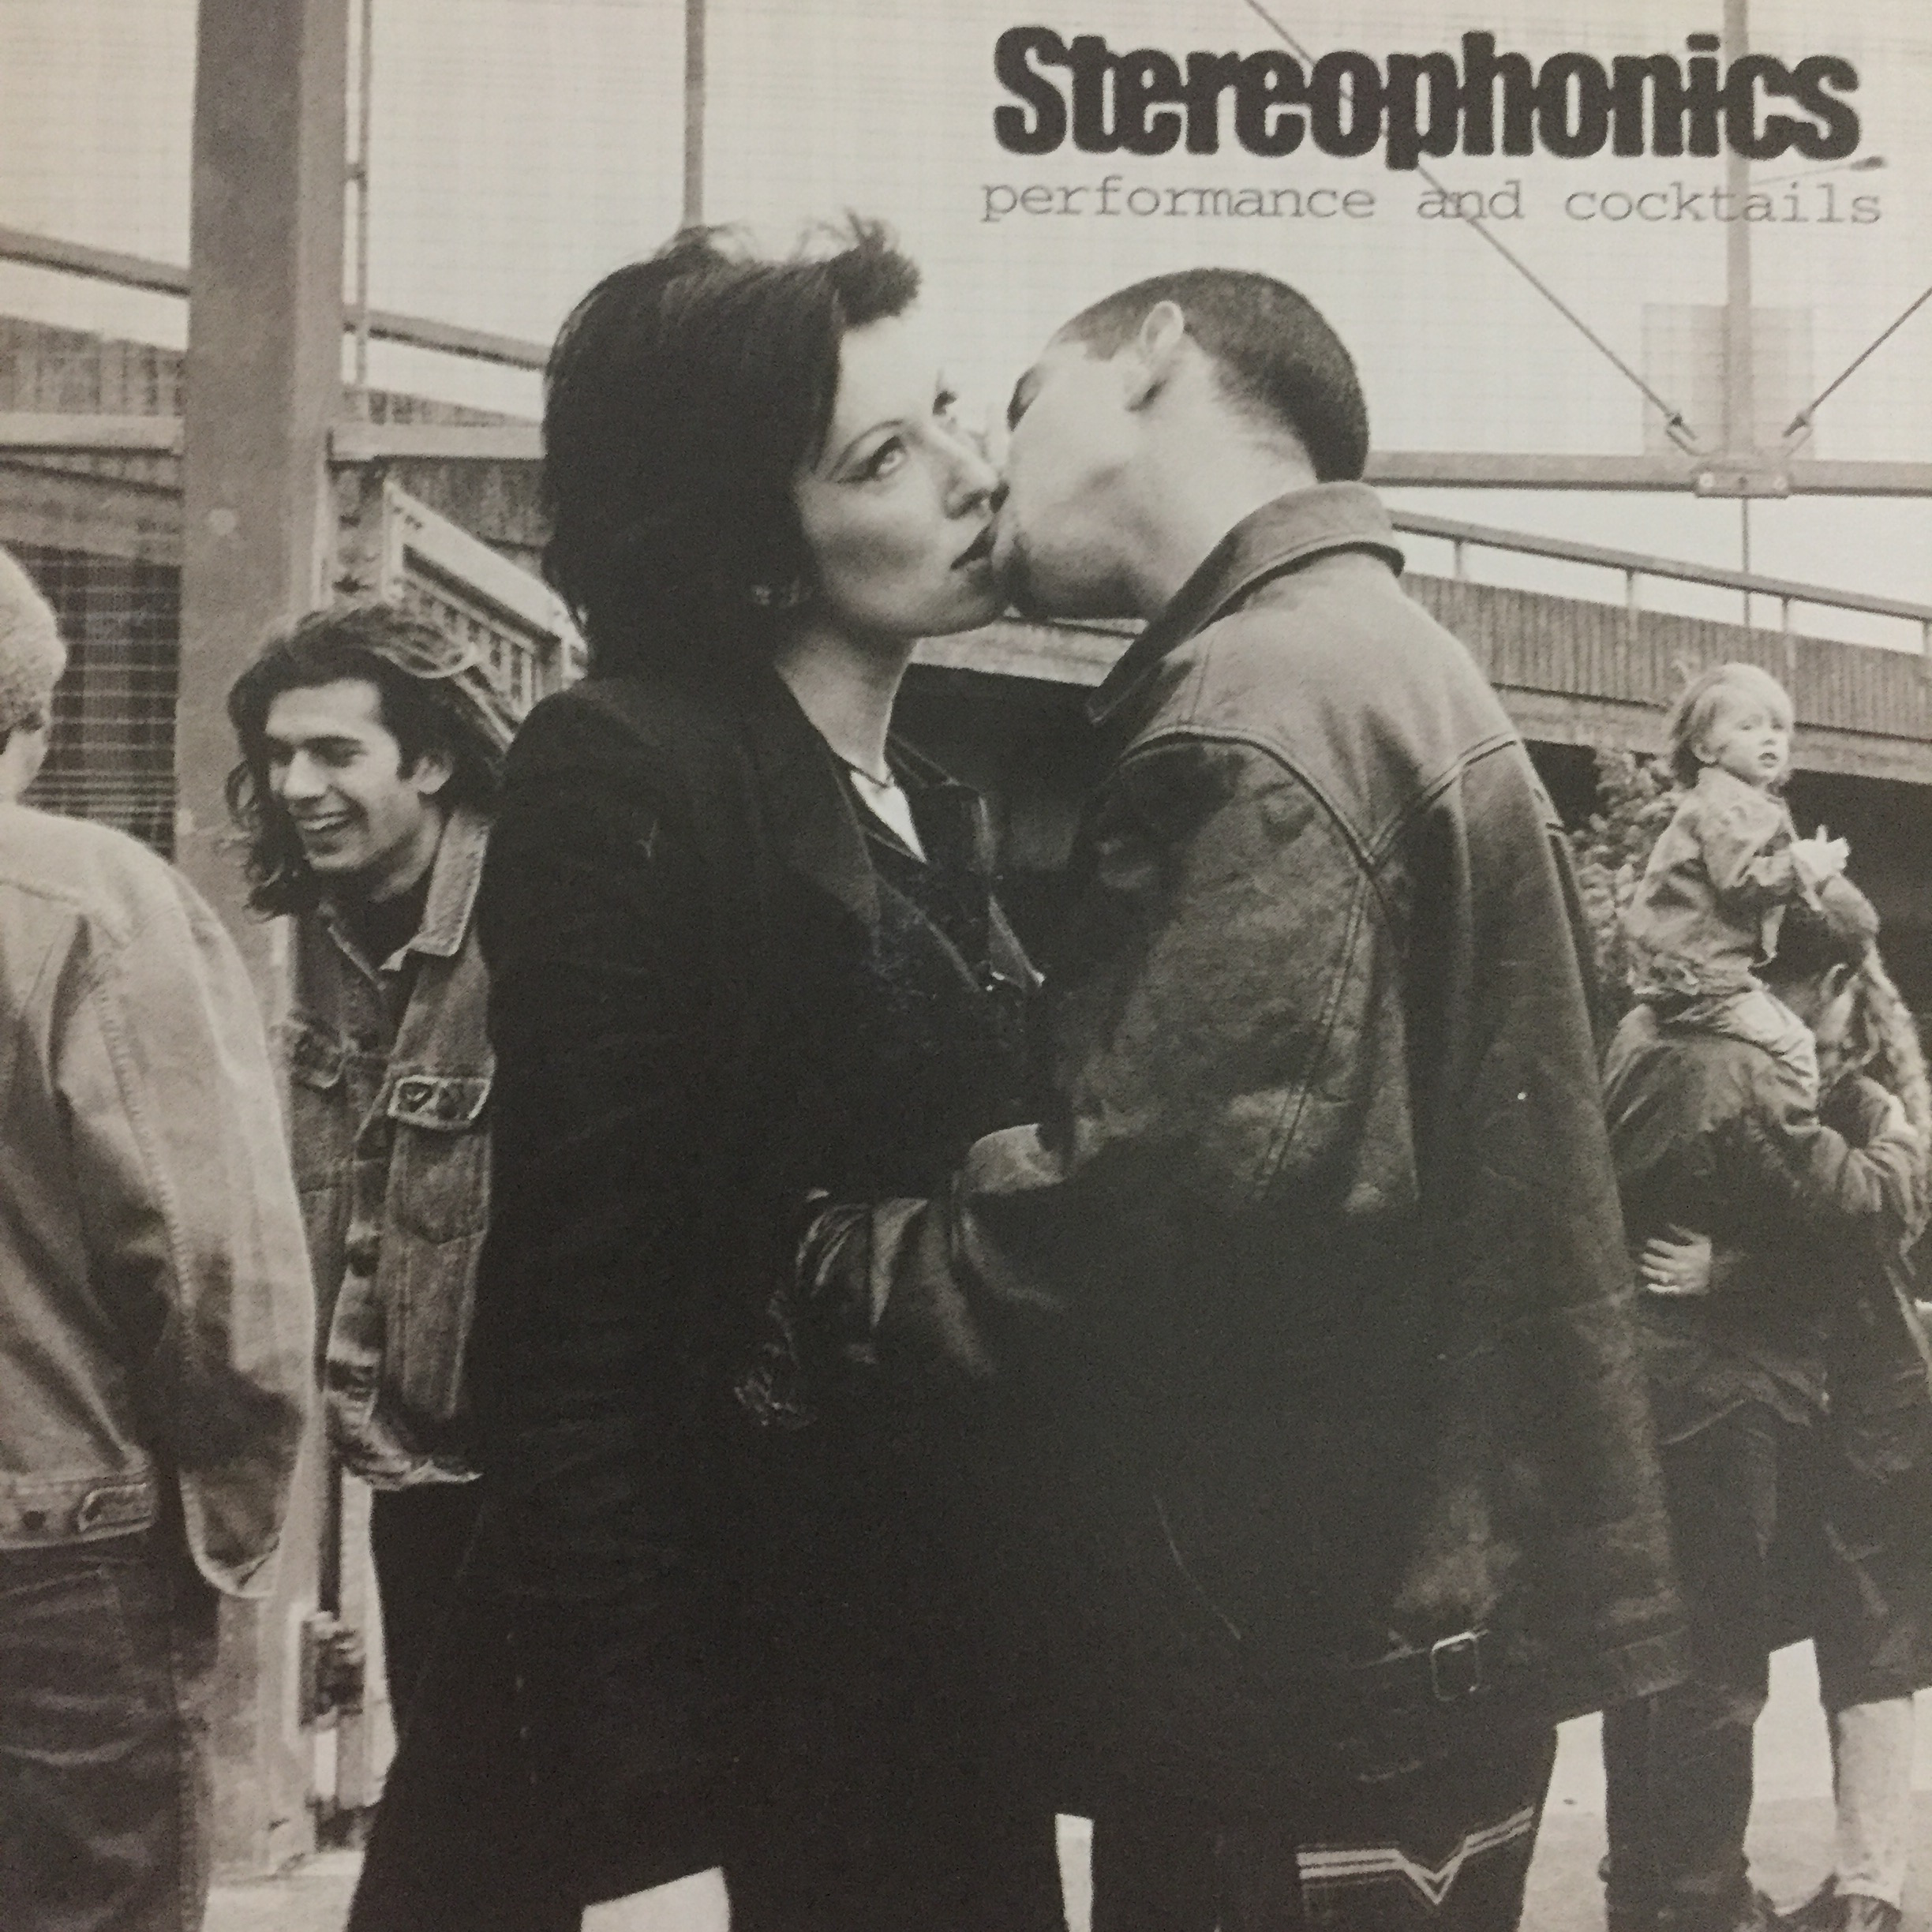 Stereophonics 「the bartender and the thief」